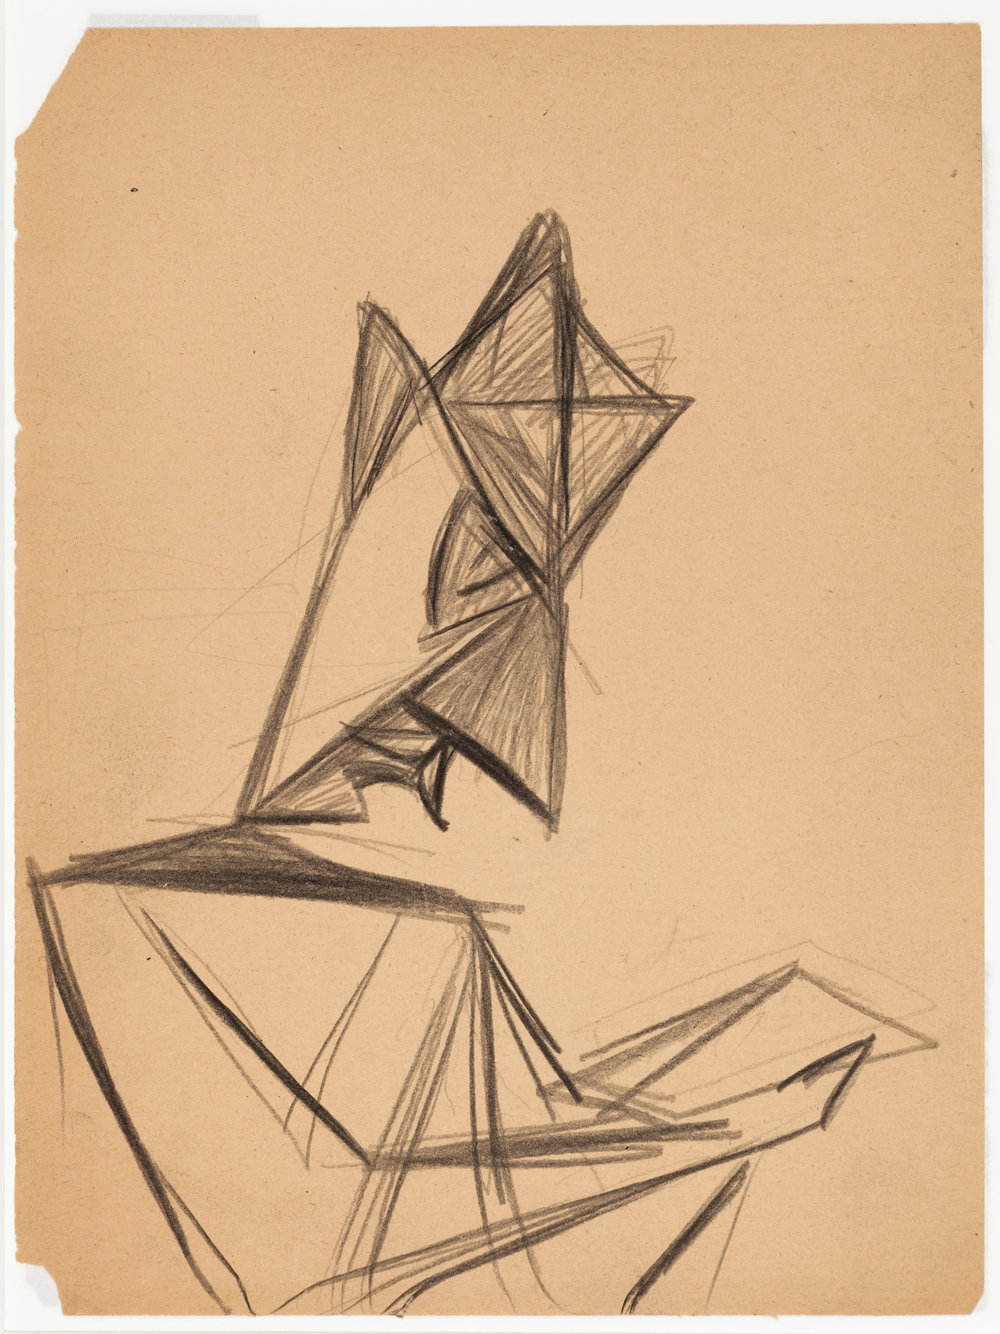 Hedda Sterne, Portrait of Saul [Steinberg], 1943, Graphite on paper, 12 in. x 8 3/4 in. (30.48 cm x 22.23 cm)